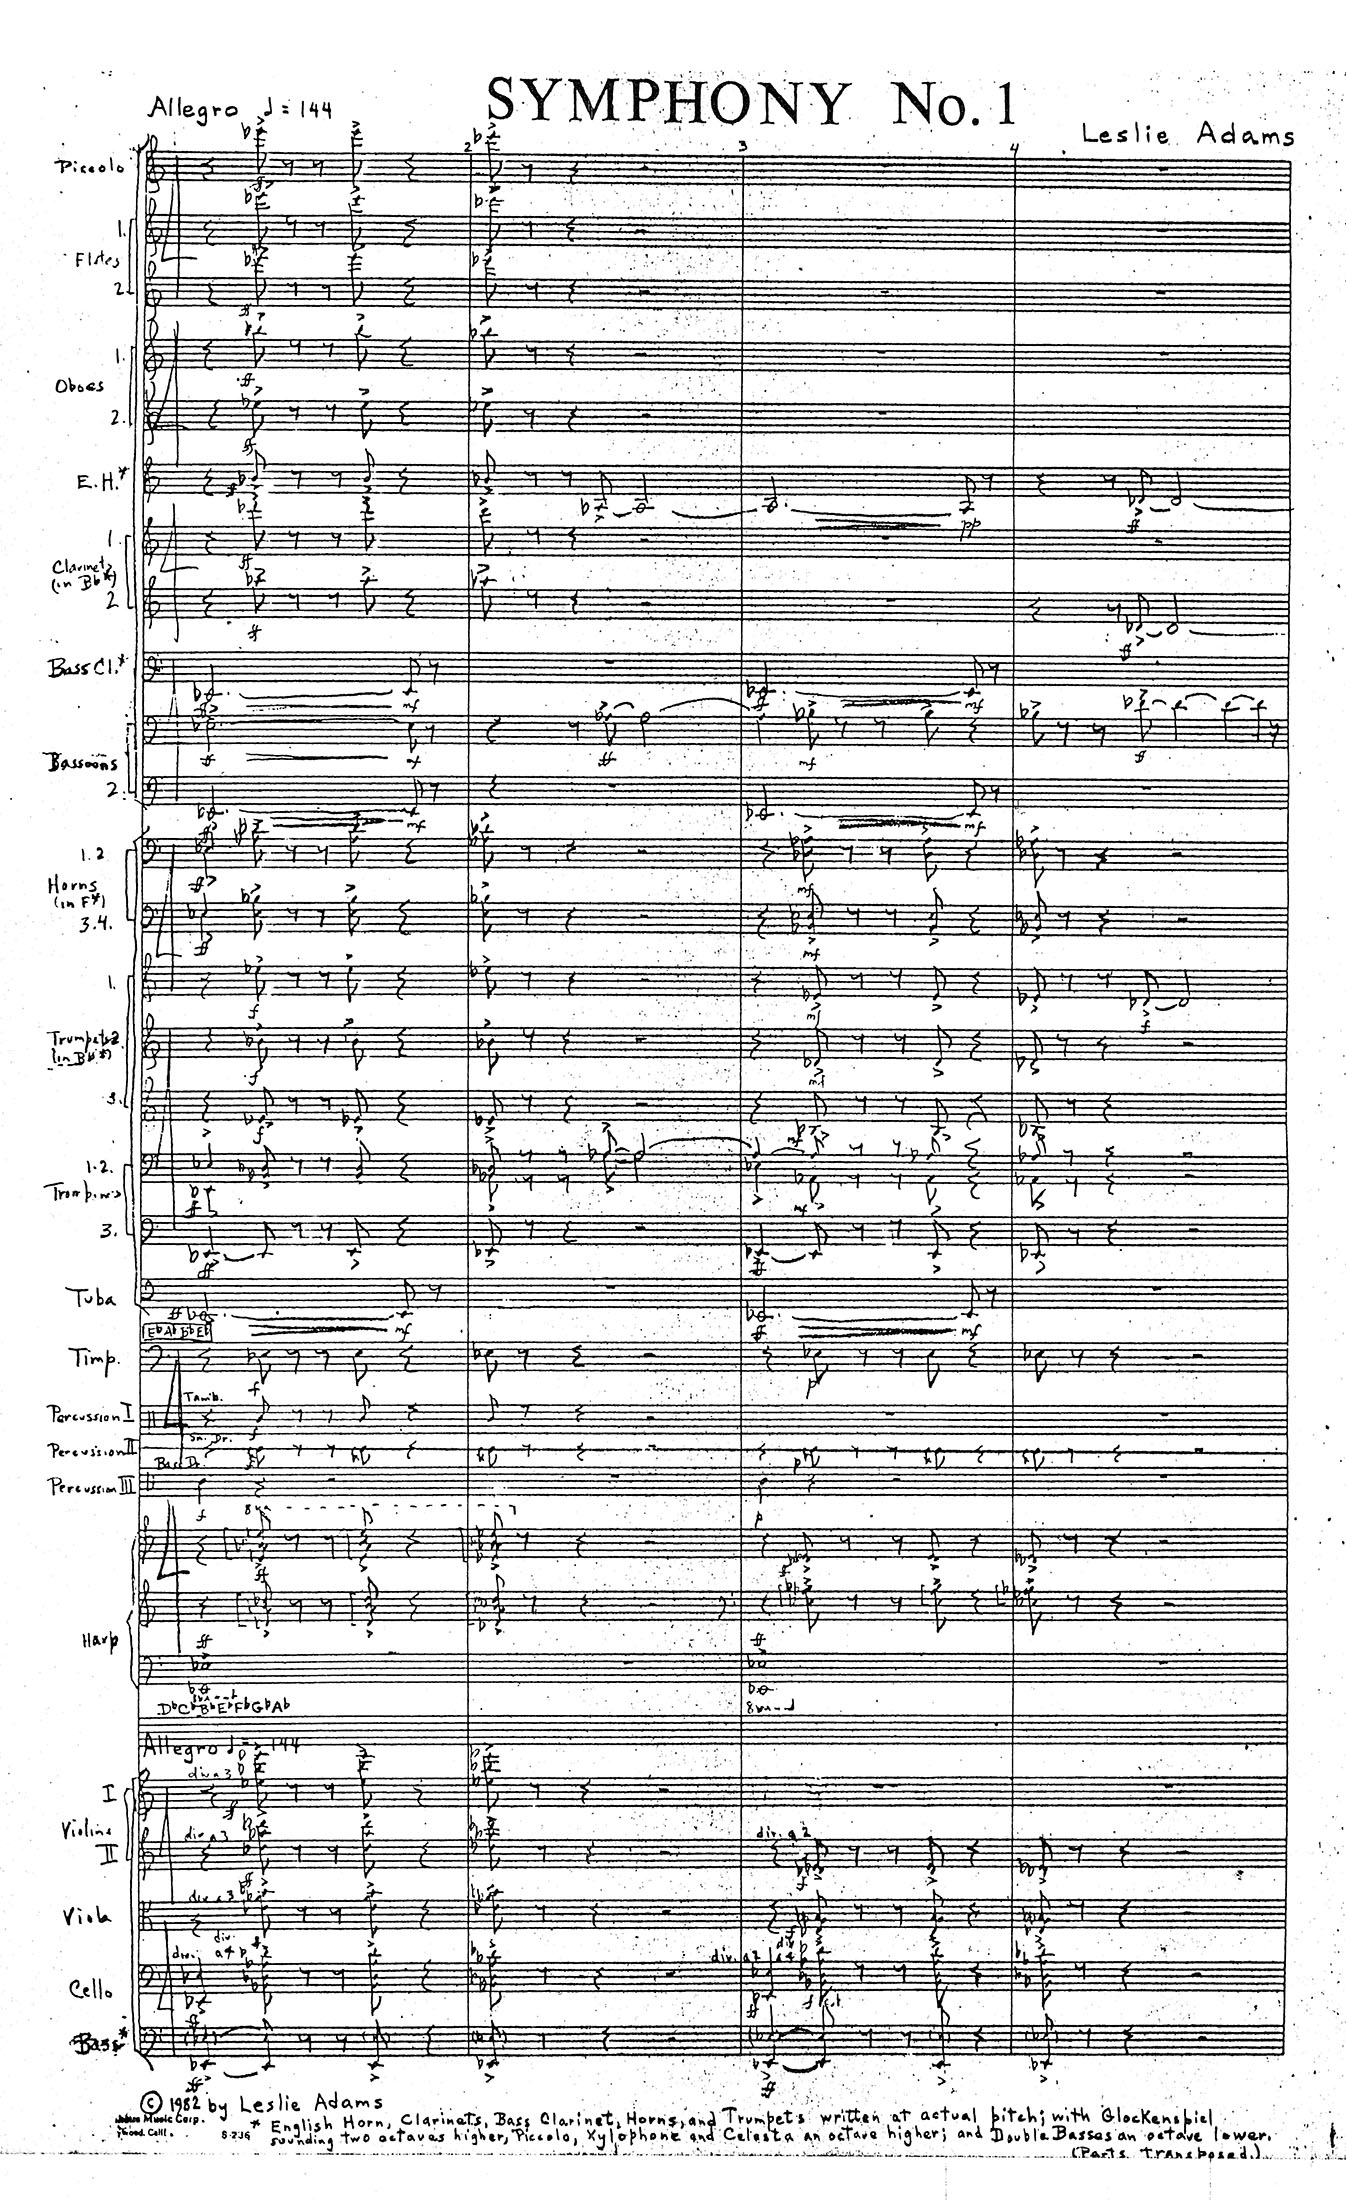 Symphony 1 by H. Leslie Adams, page 1 of 383